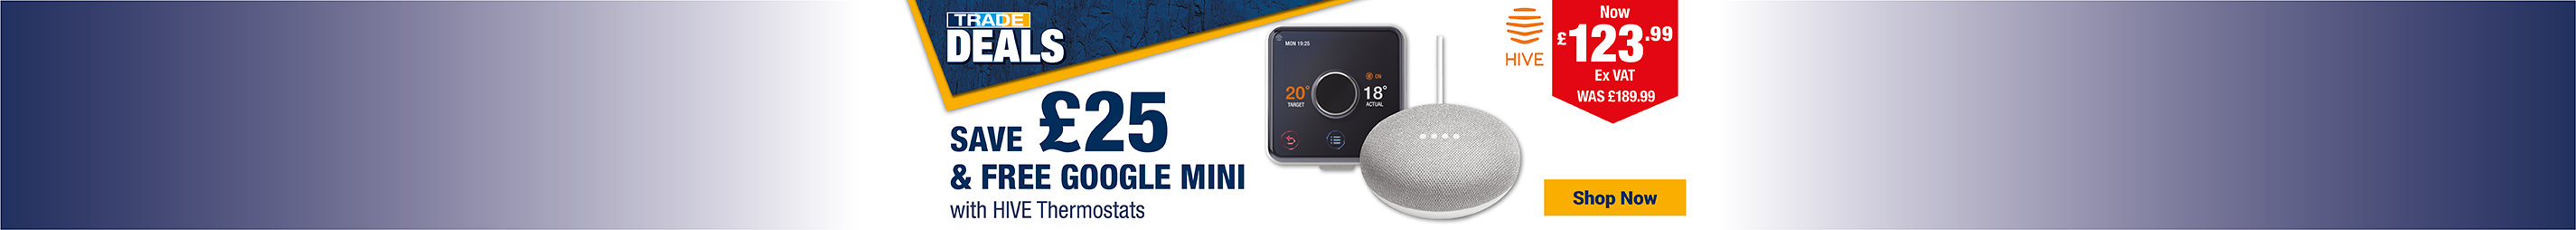 Great Deal on Hive Thermostats